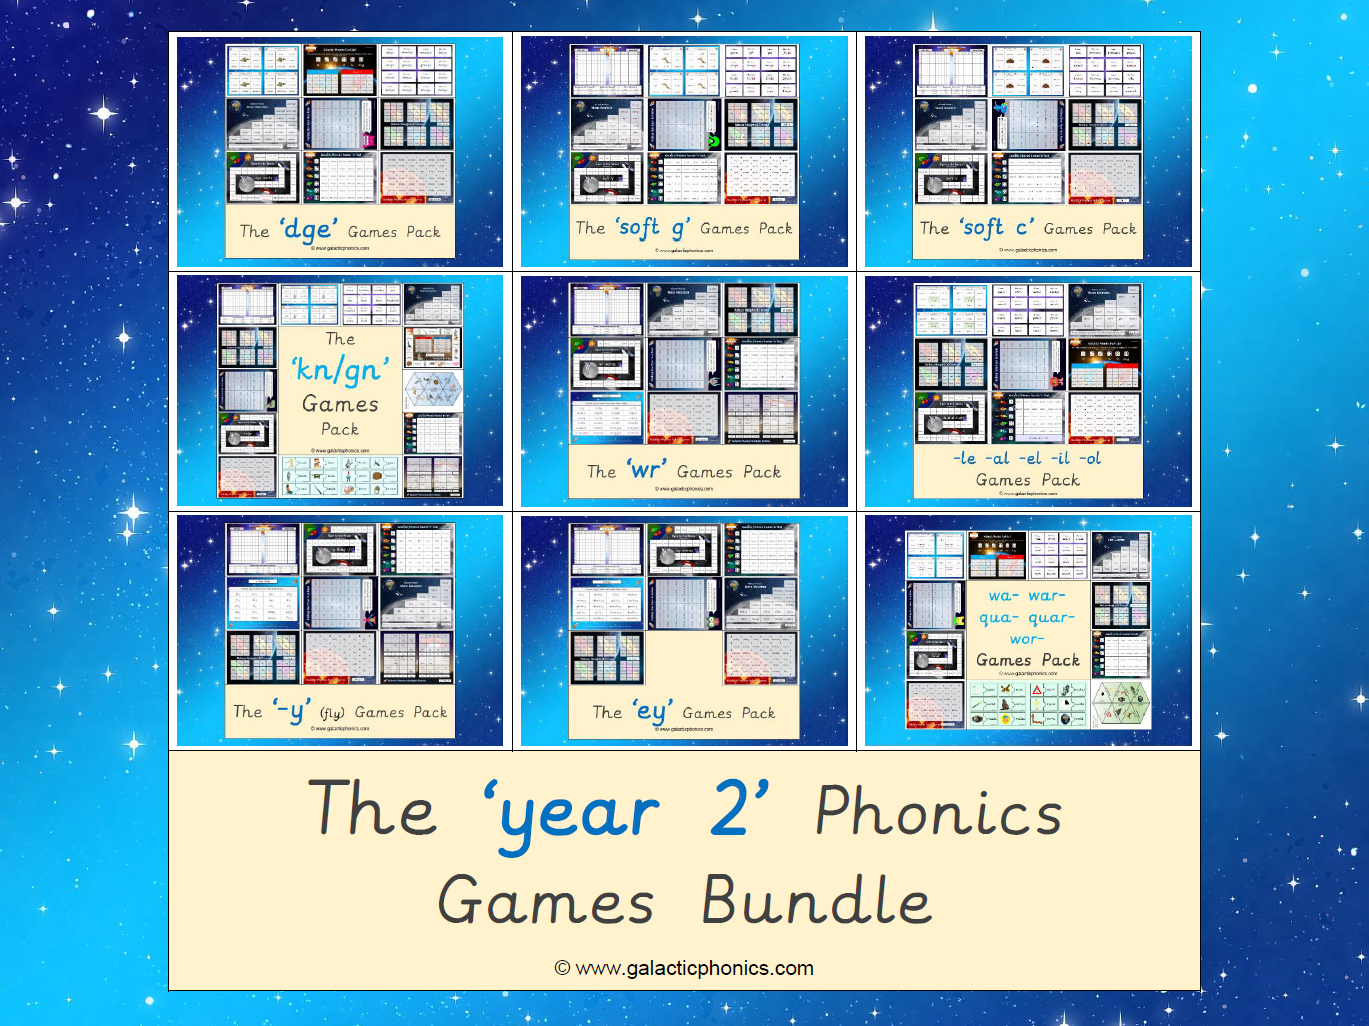 The Year 2 Phonics Games Bundle